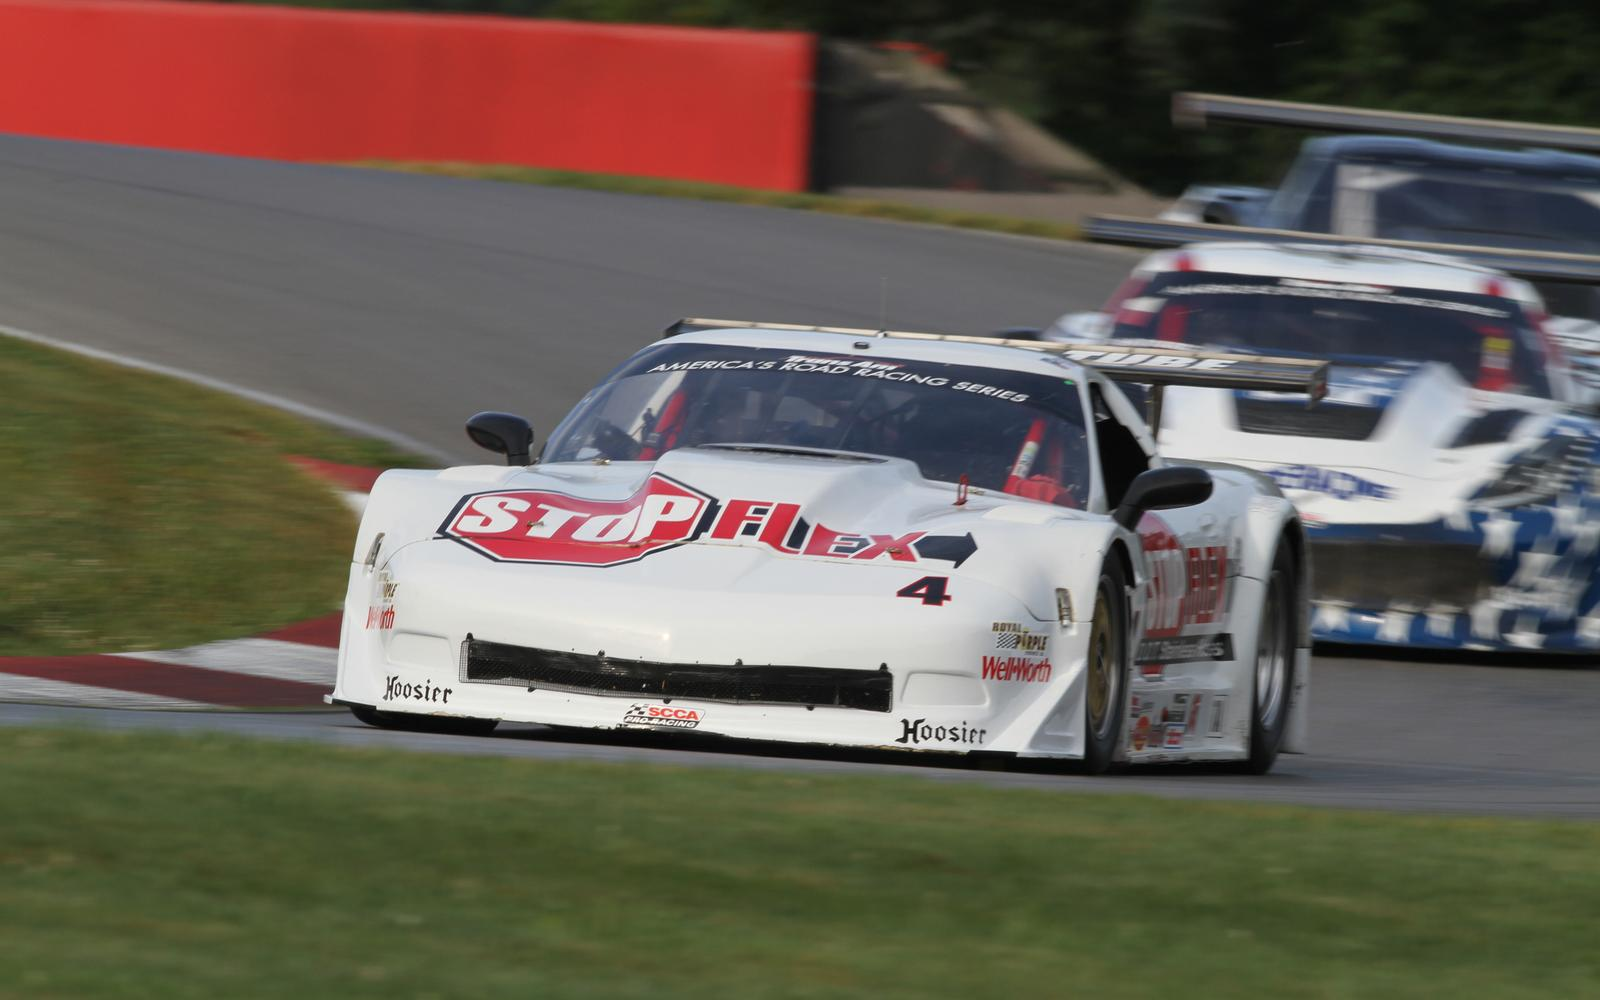 Tony Ave Racing's Paul Fix Wins Wild Trans Am Race at Mid-Ohio Sports Car Course